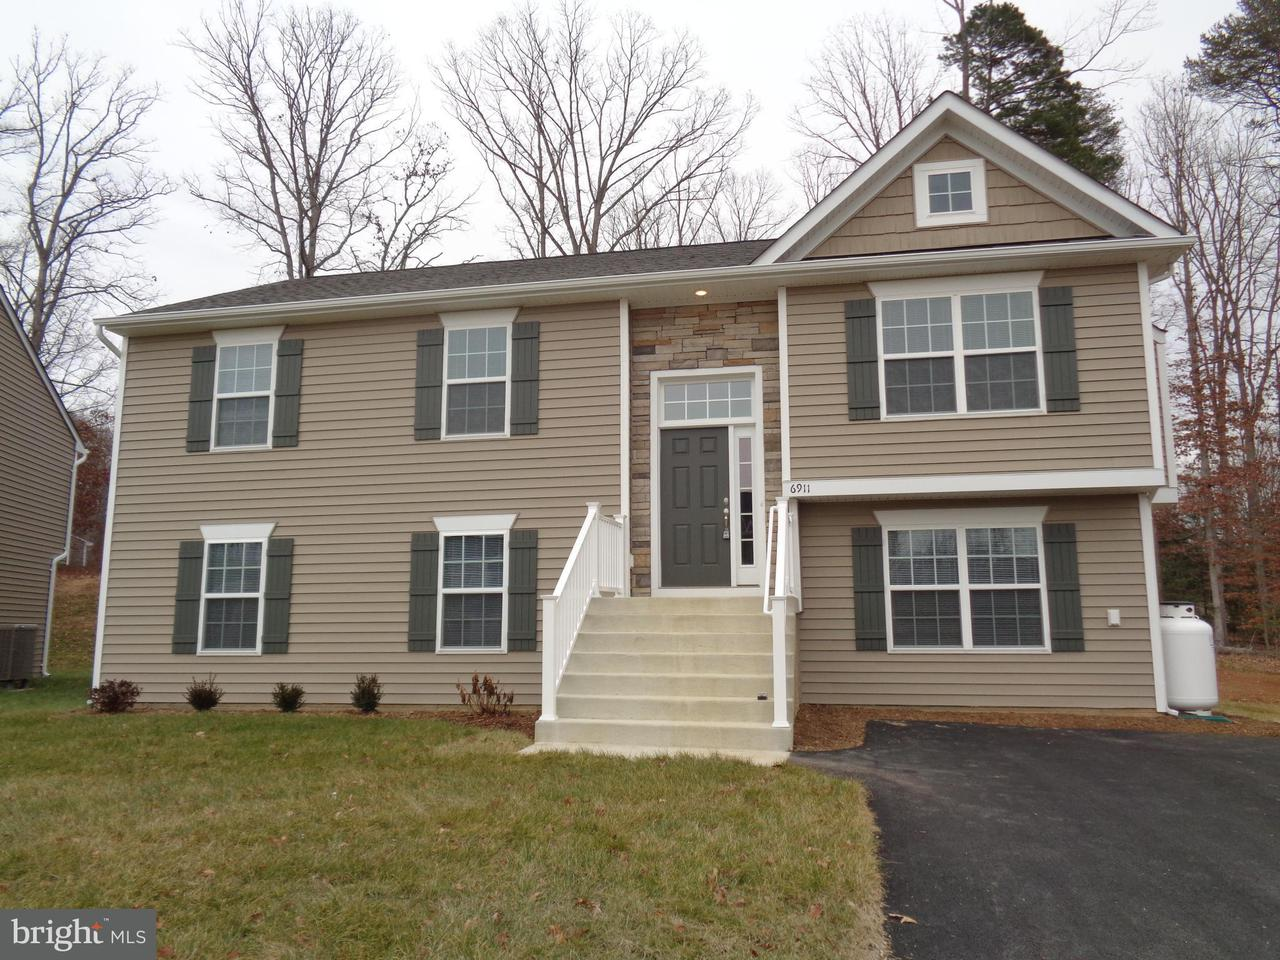 Other Residential for Rent at 6911 Lunette Ln Spotsylvania, Virginia 22553 United States